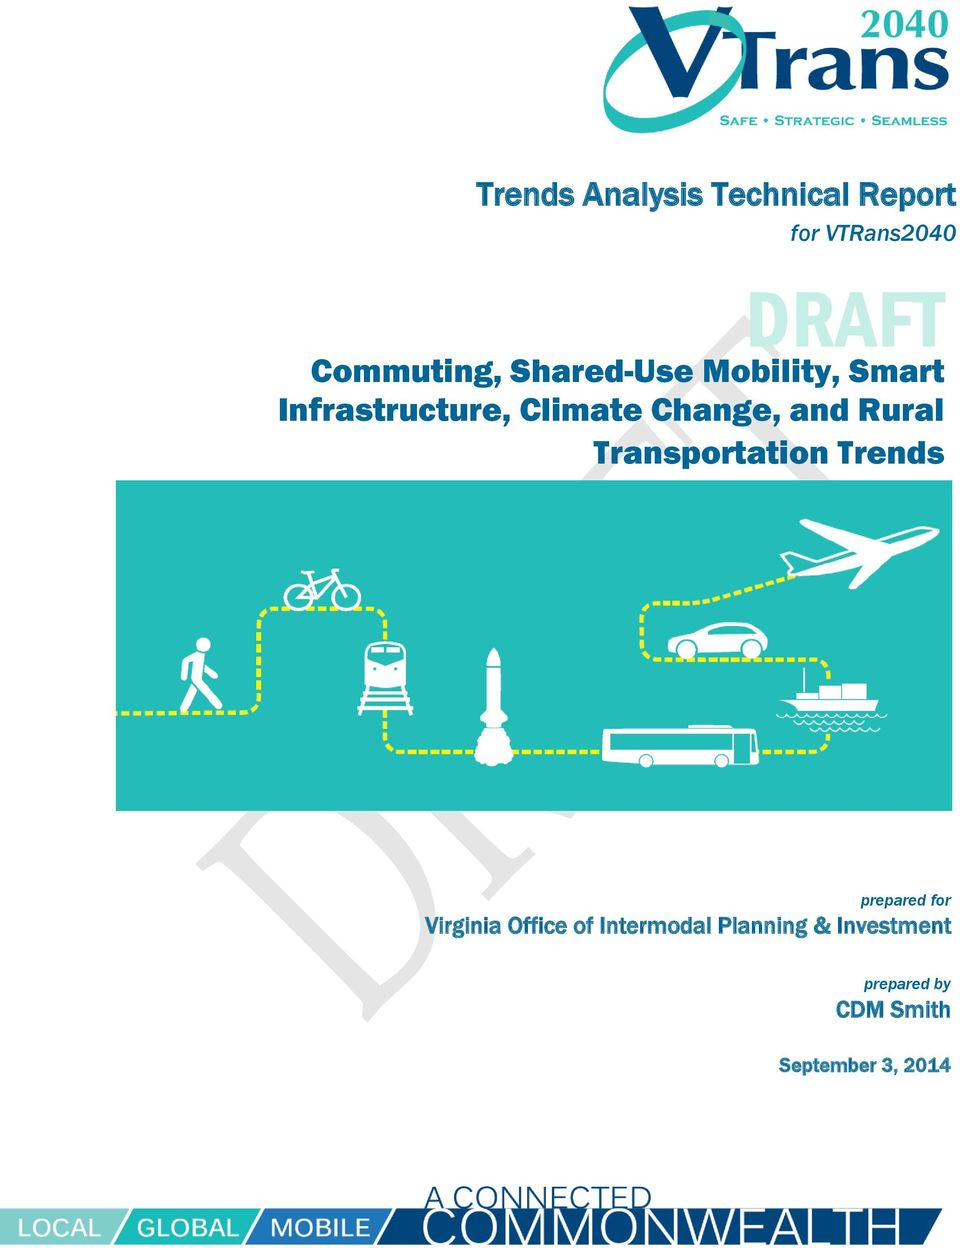 Rural Transportation Trends prepared for Virginia Office of